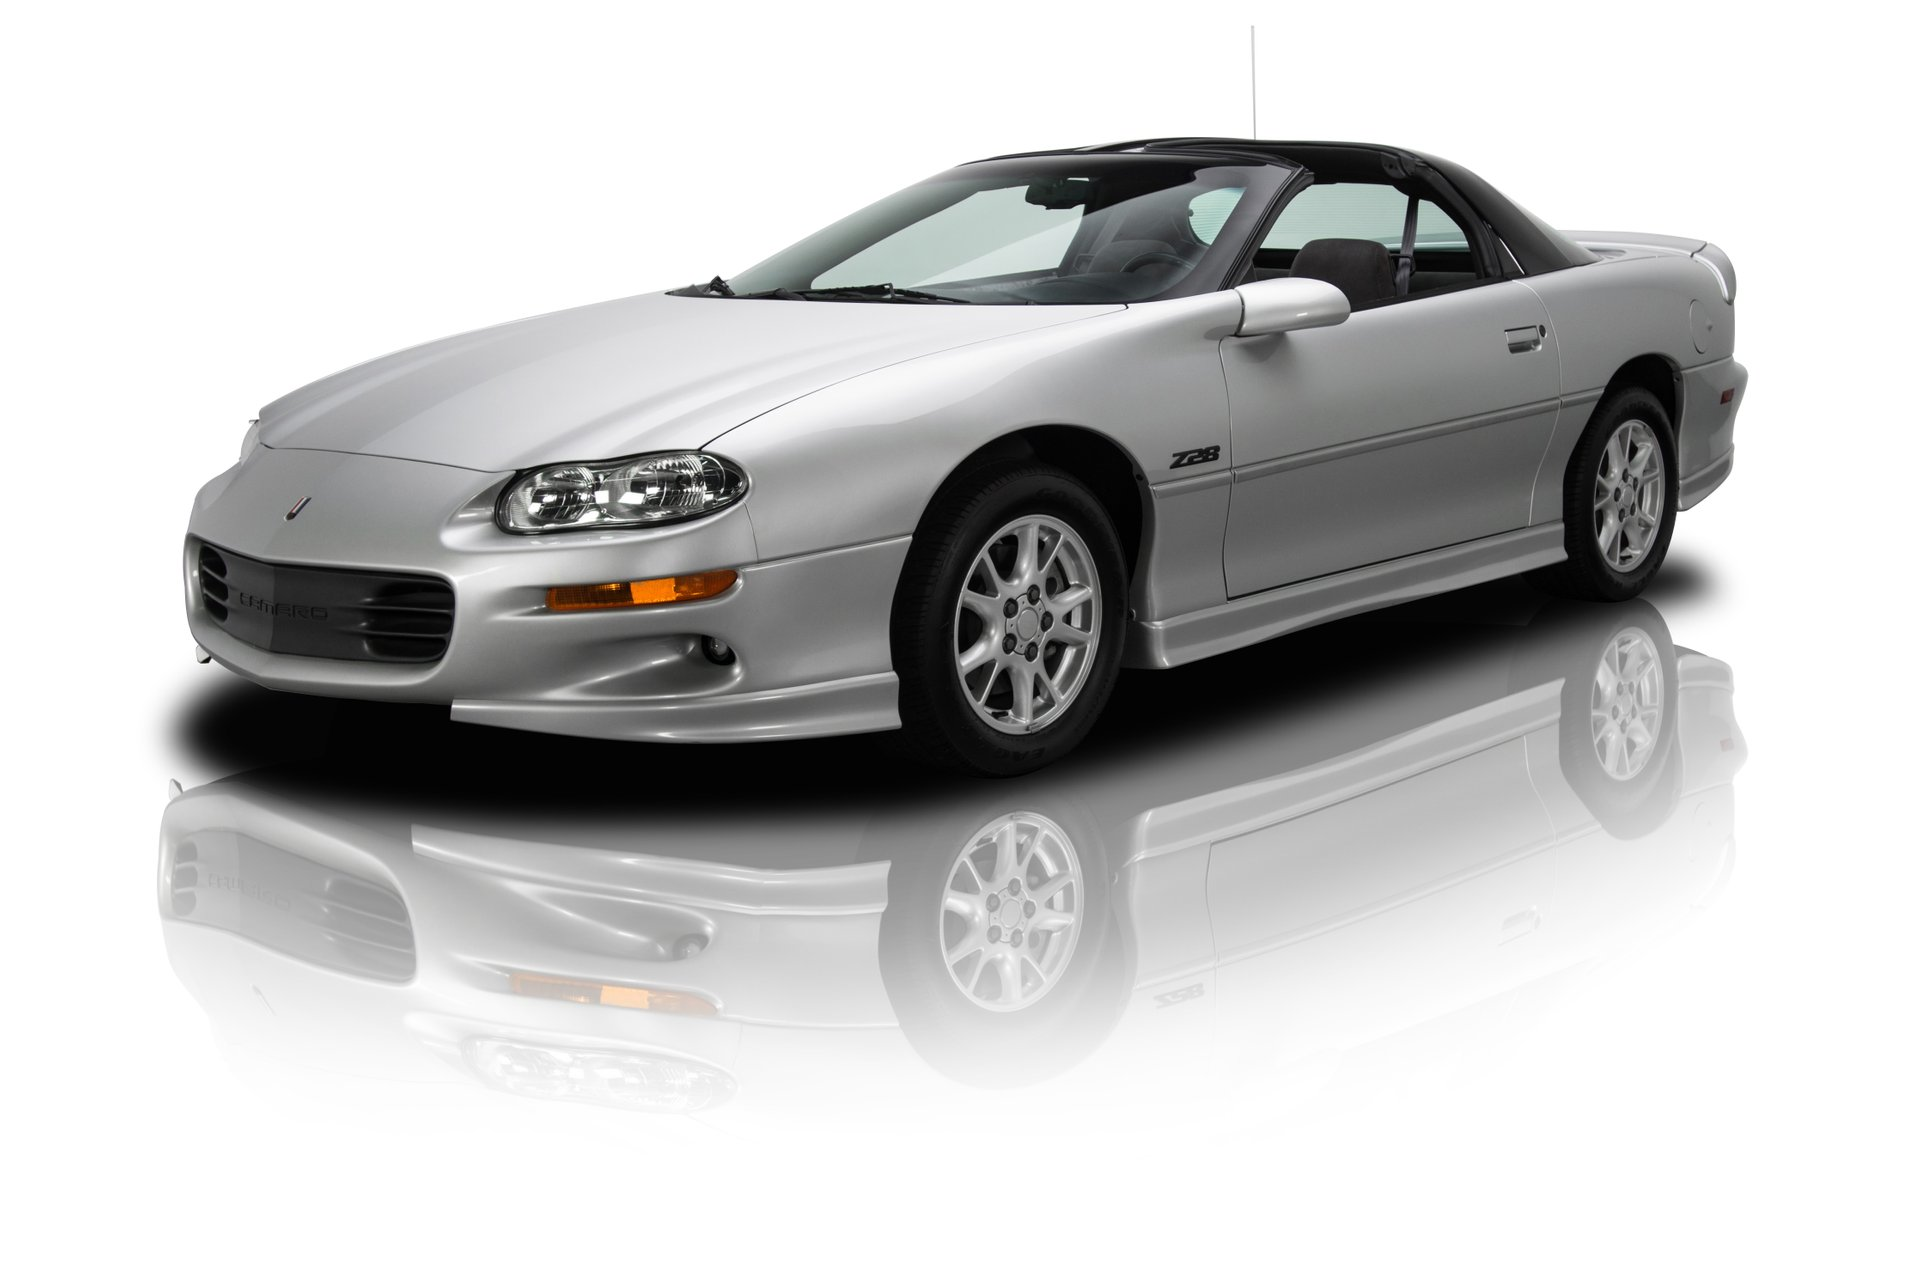 hight resolution of for sale 2000 chevrolet camaro